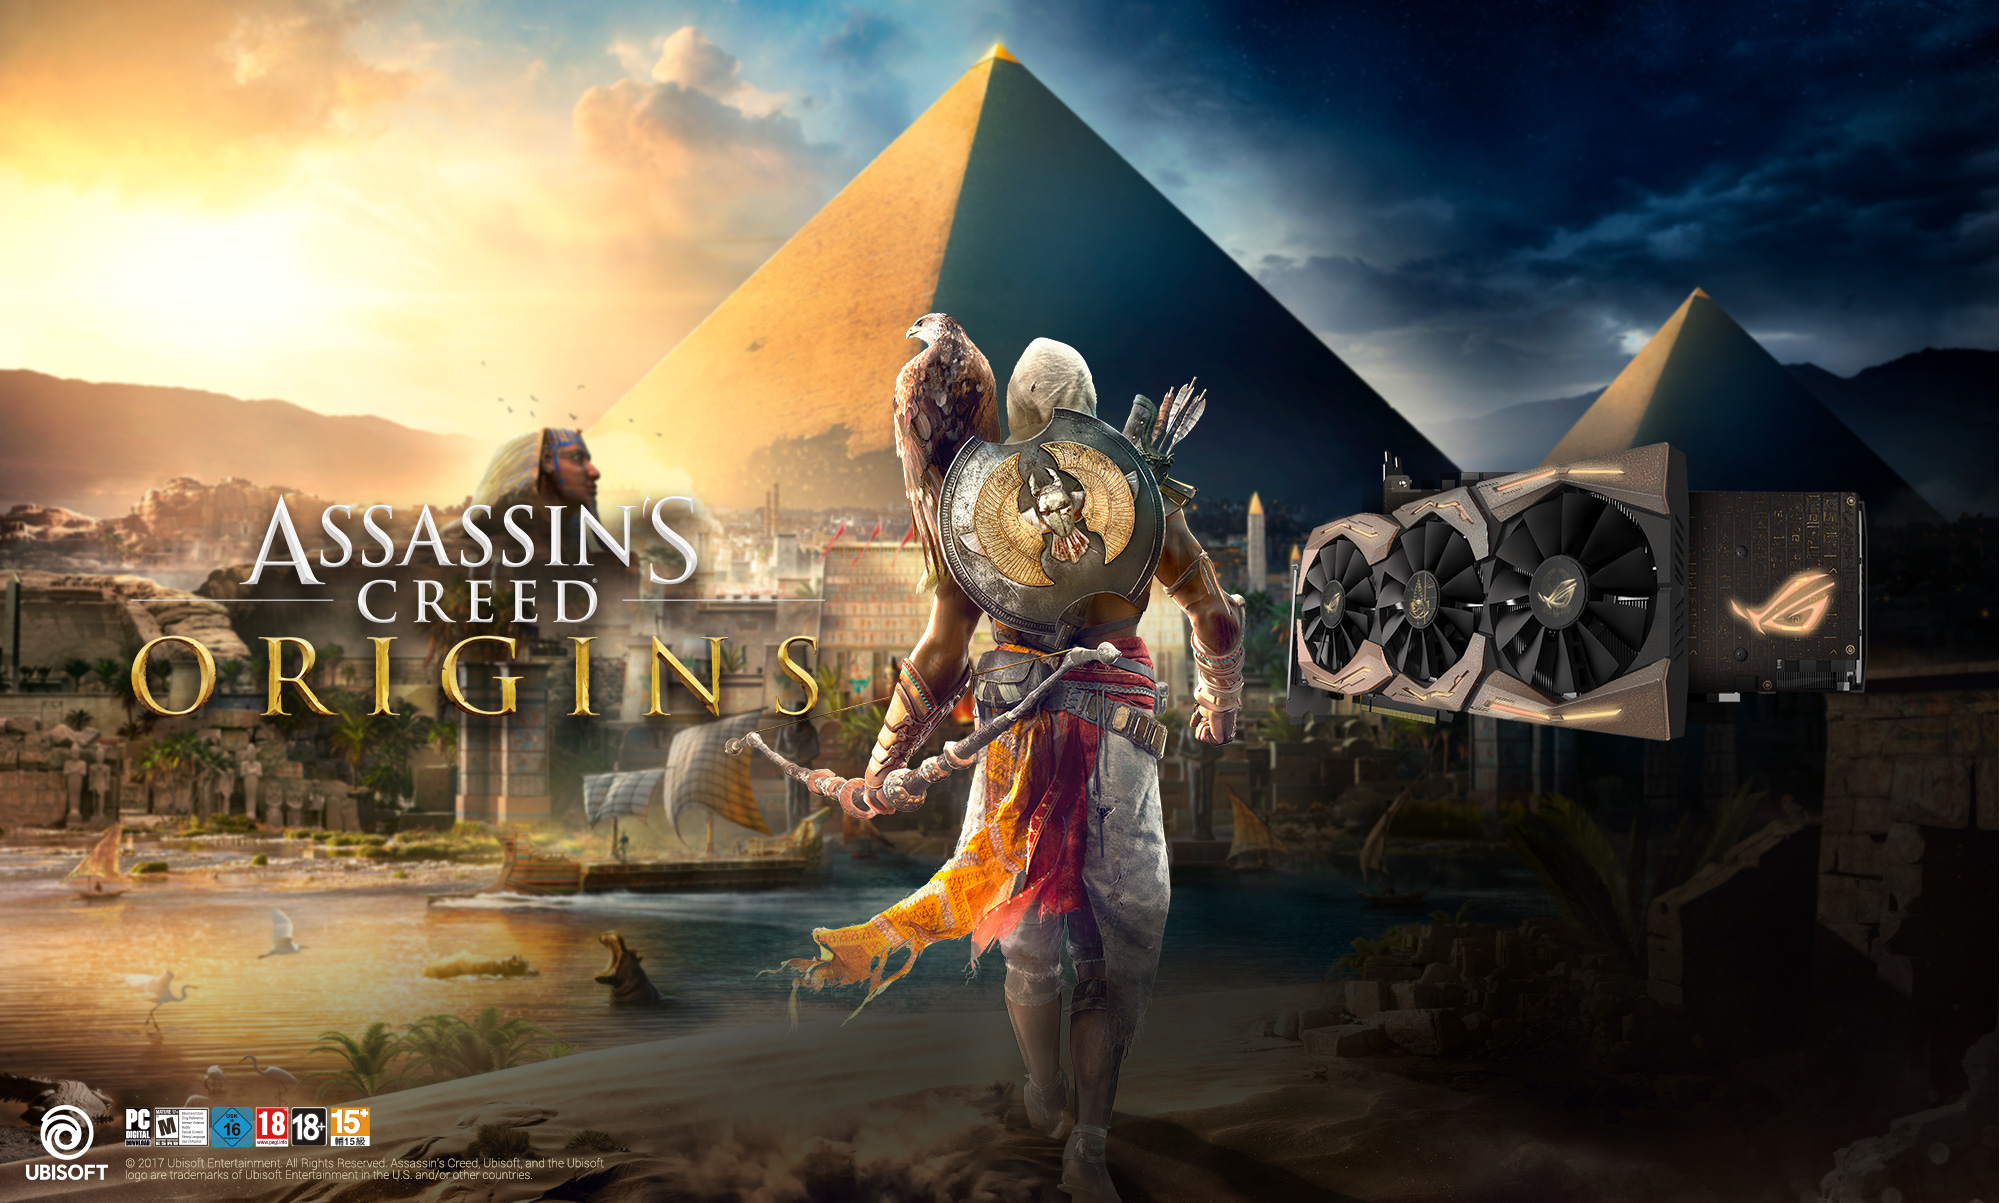 Hieroglyphs Assassins Creed Origins Hd Games 4k: The ASUS ROG Strix 1080Ti Assassin's Creed Origin Edition